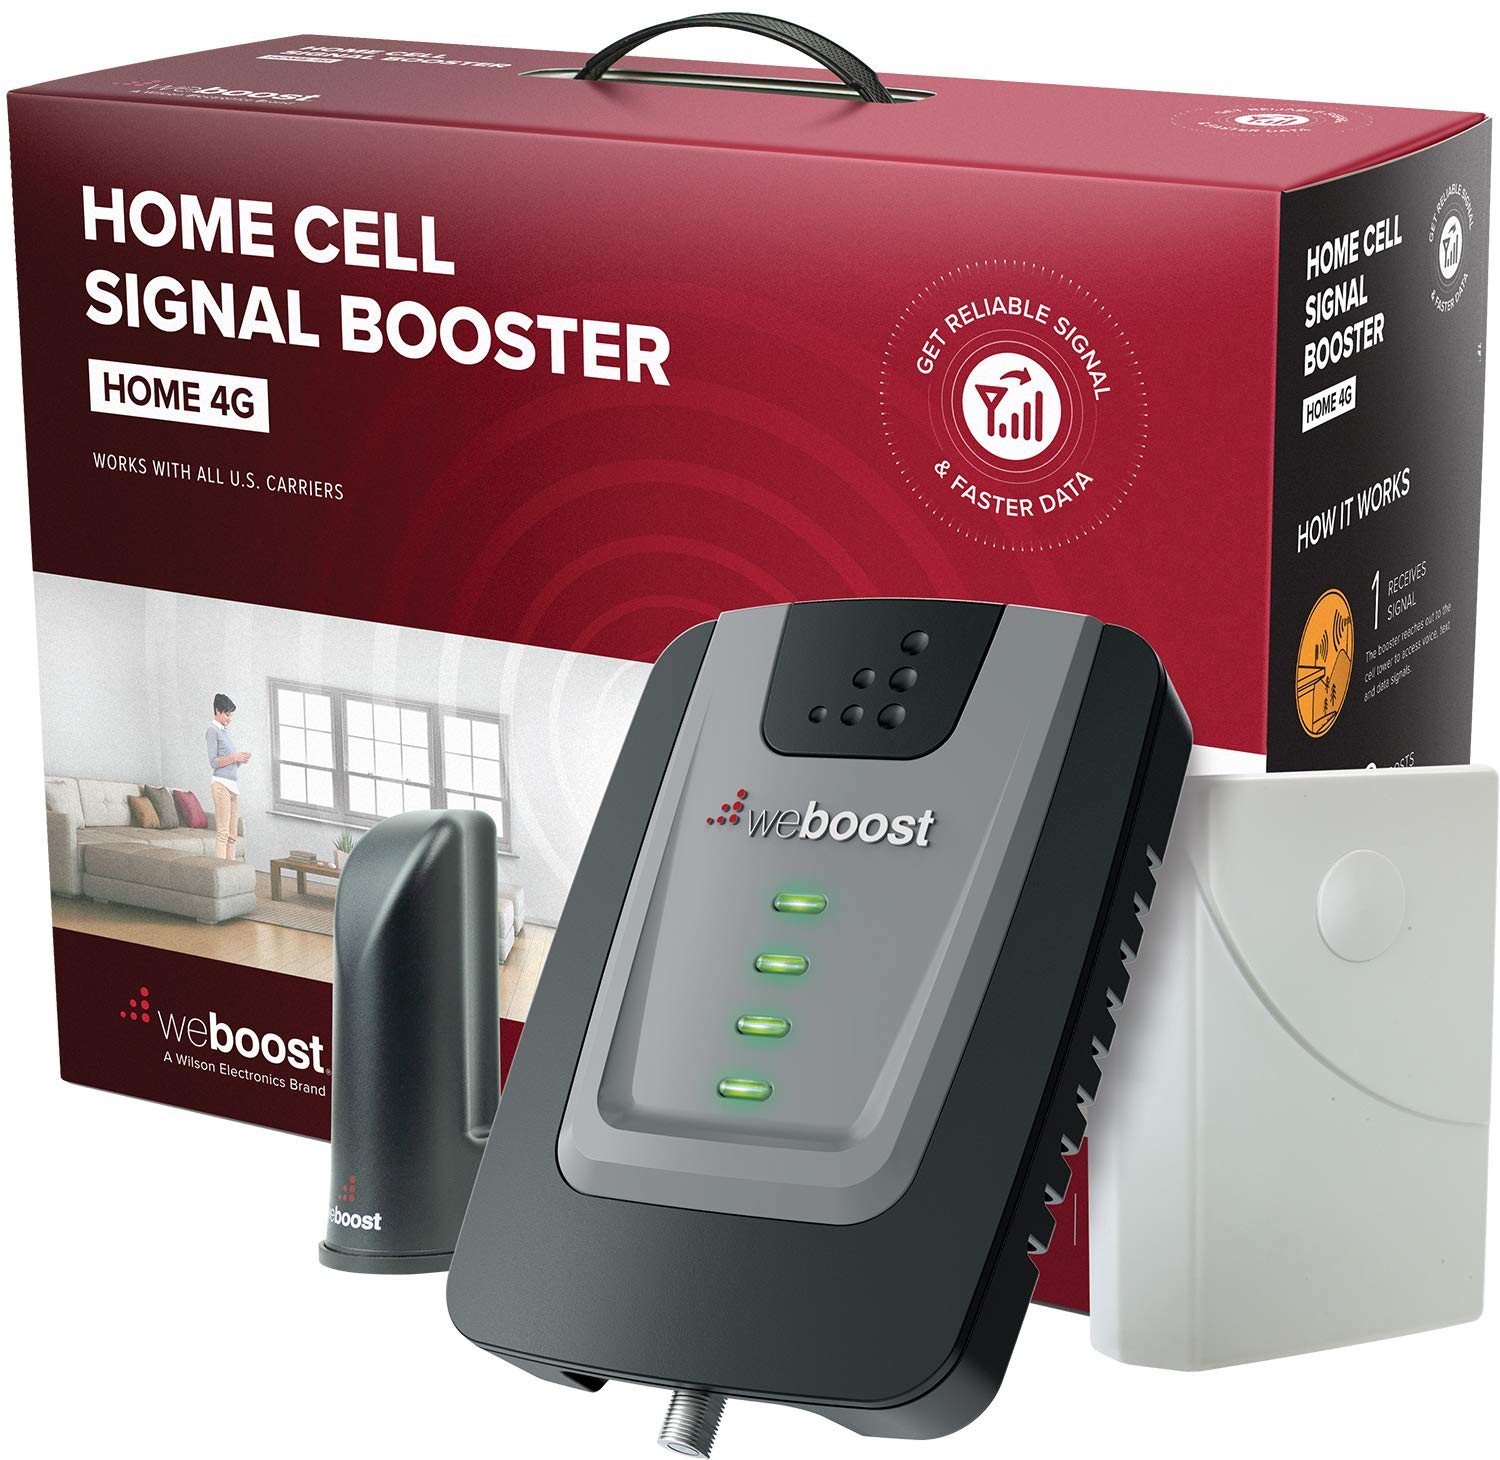 weBoost Home 4G (470101) Cell Phone Signal Booster for Home and Office -  Verizon, AT&T, T-Mobile, Sprint - Supports 1,500 Square Foot Area